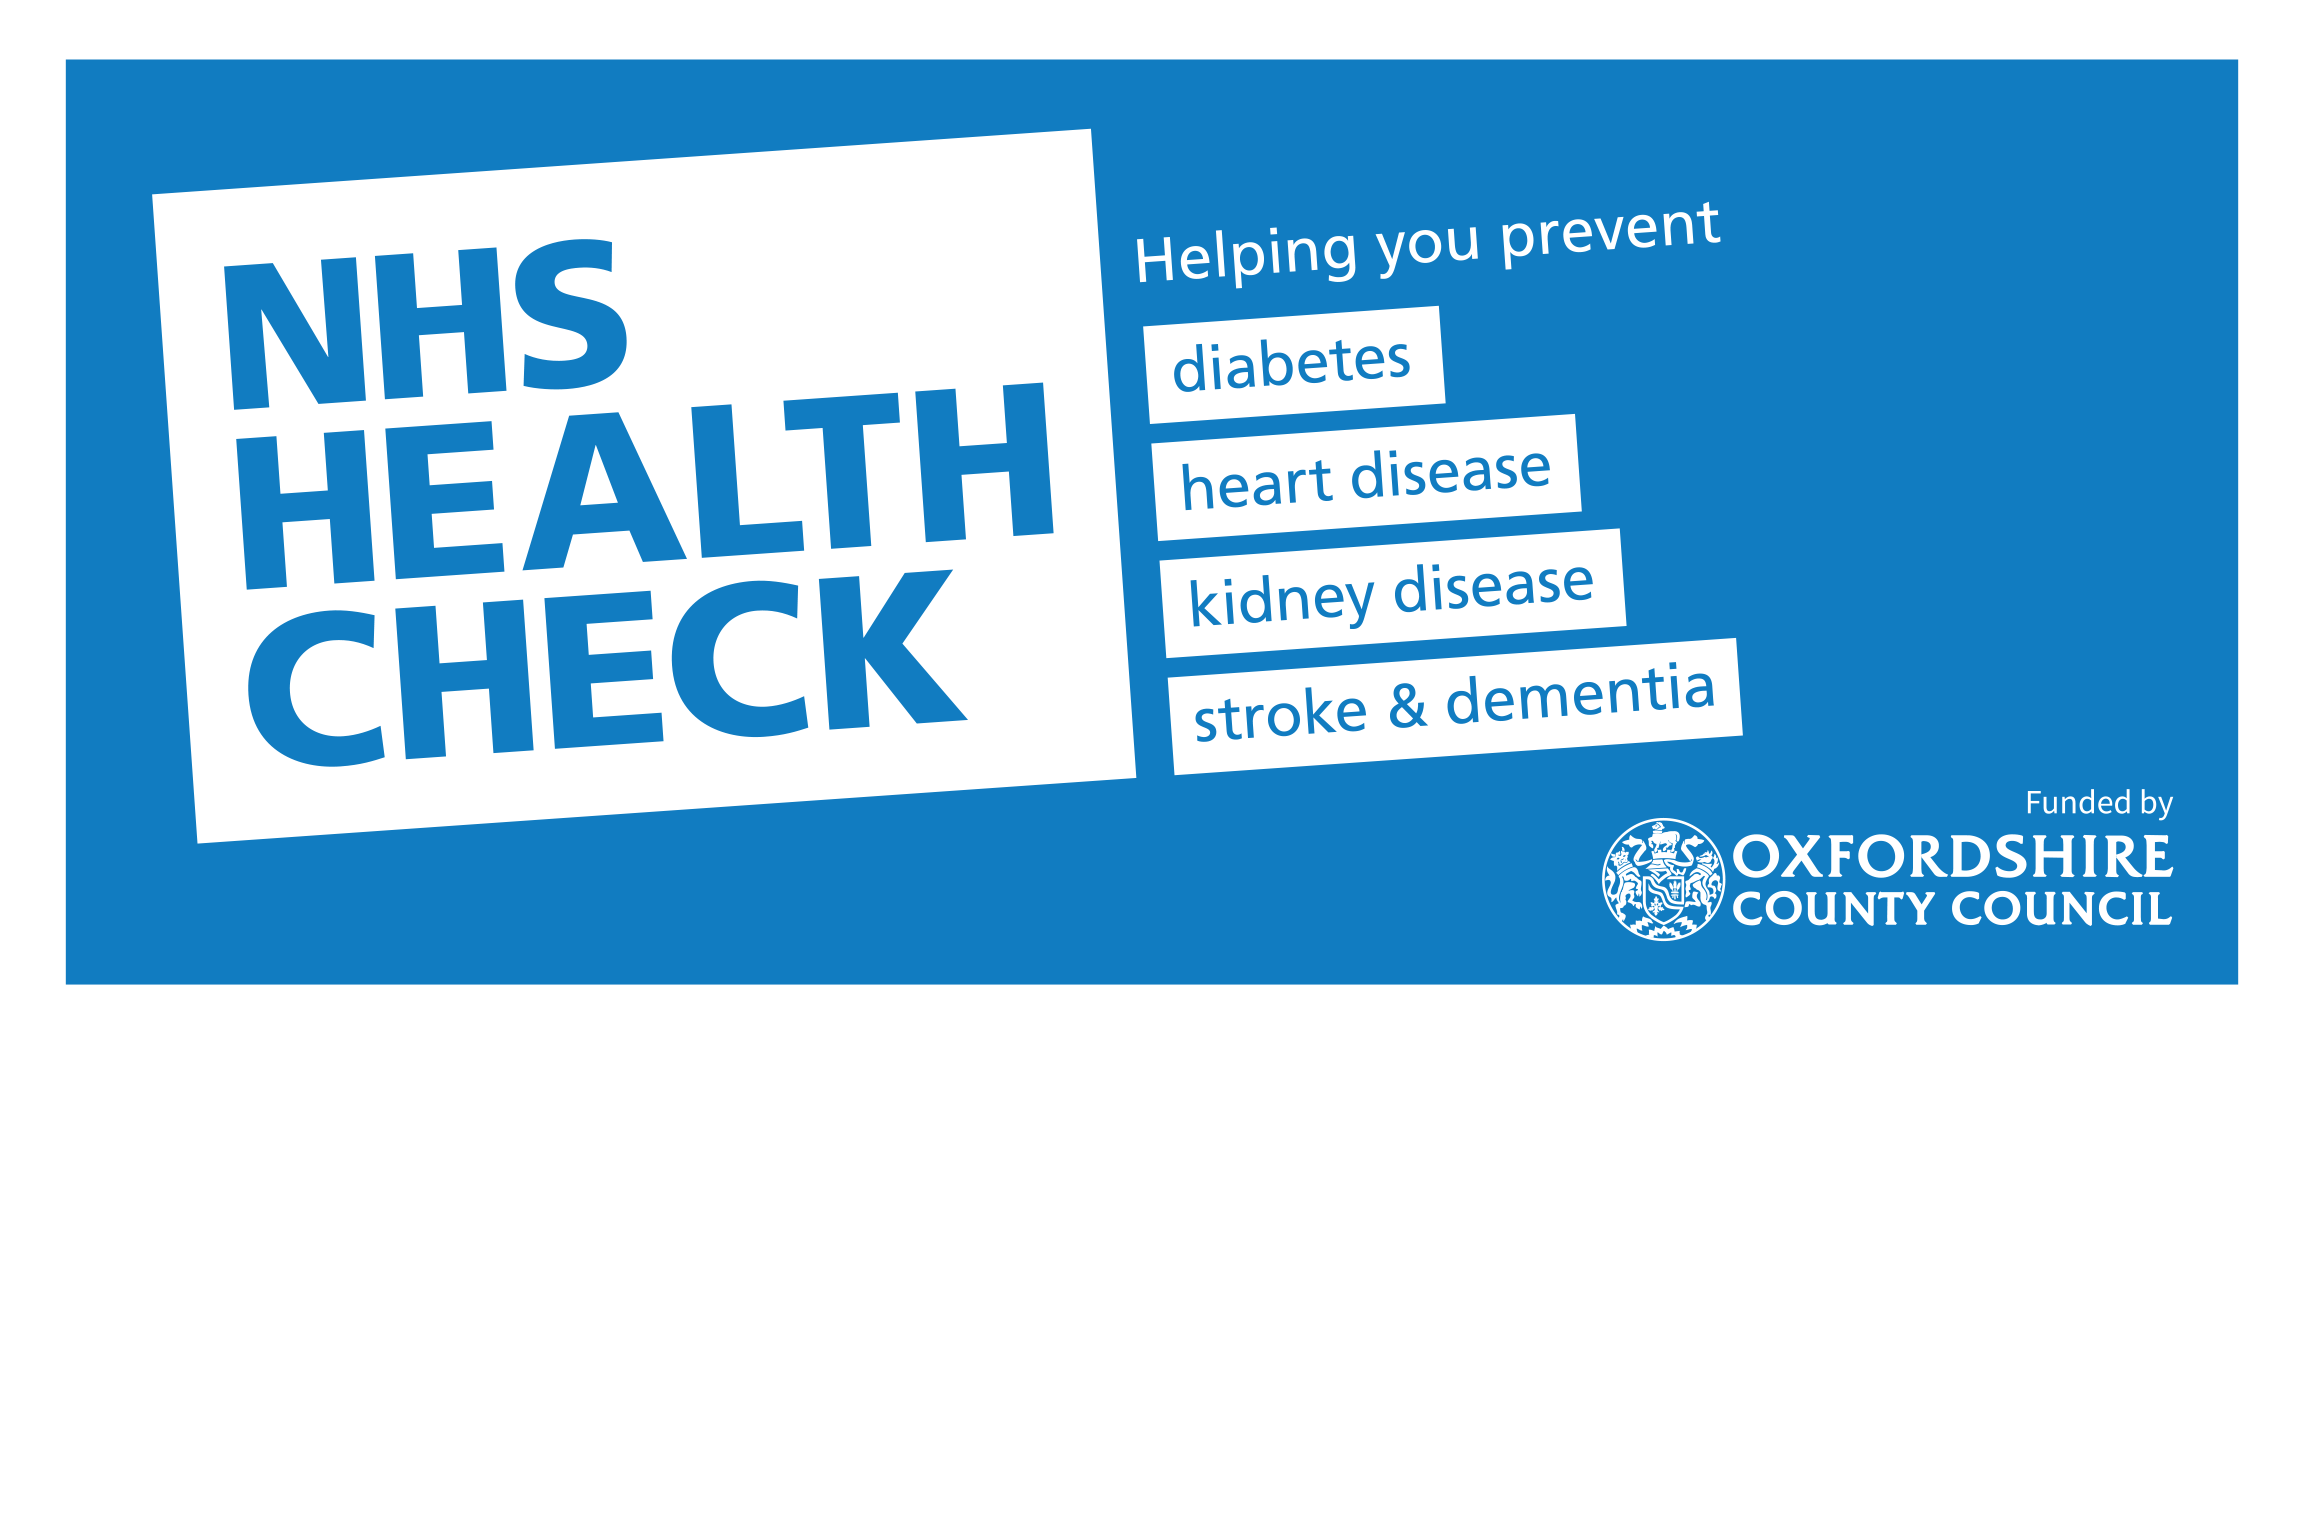 NHS Health Check logo